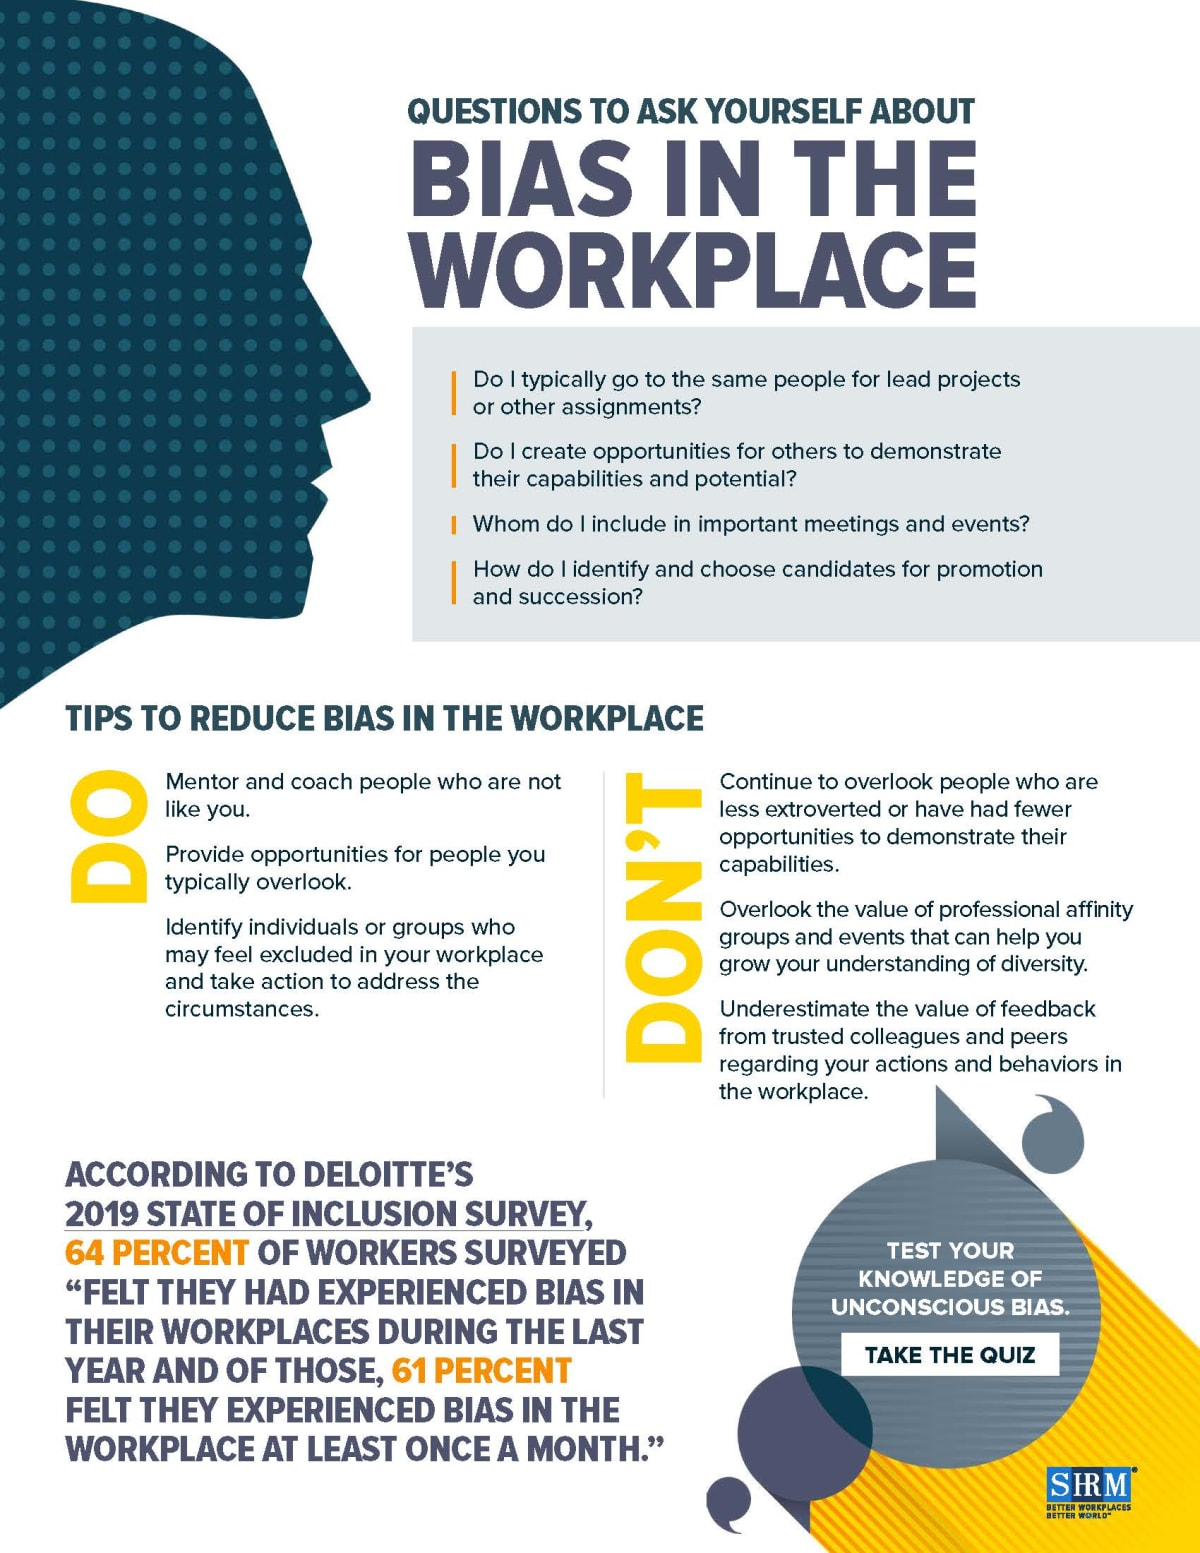 Questions to Ask about Workplace Bias